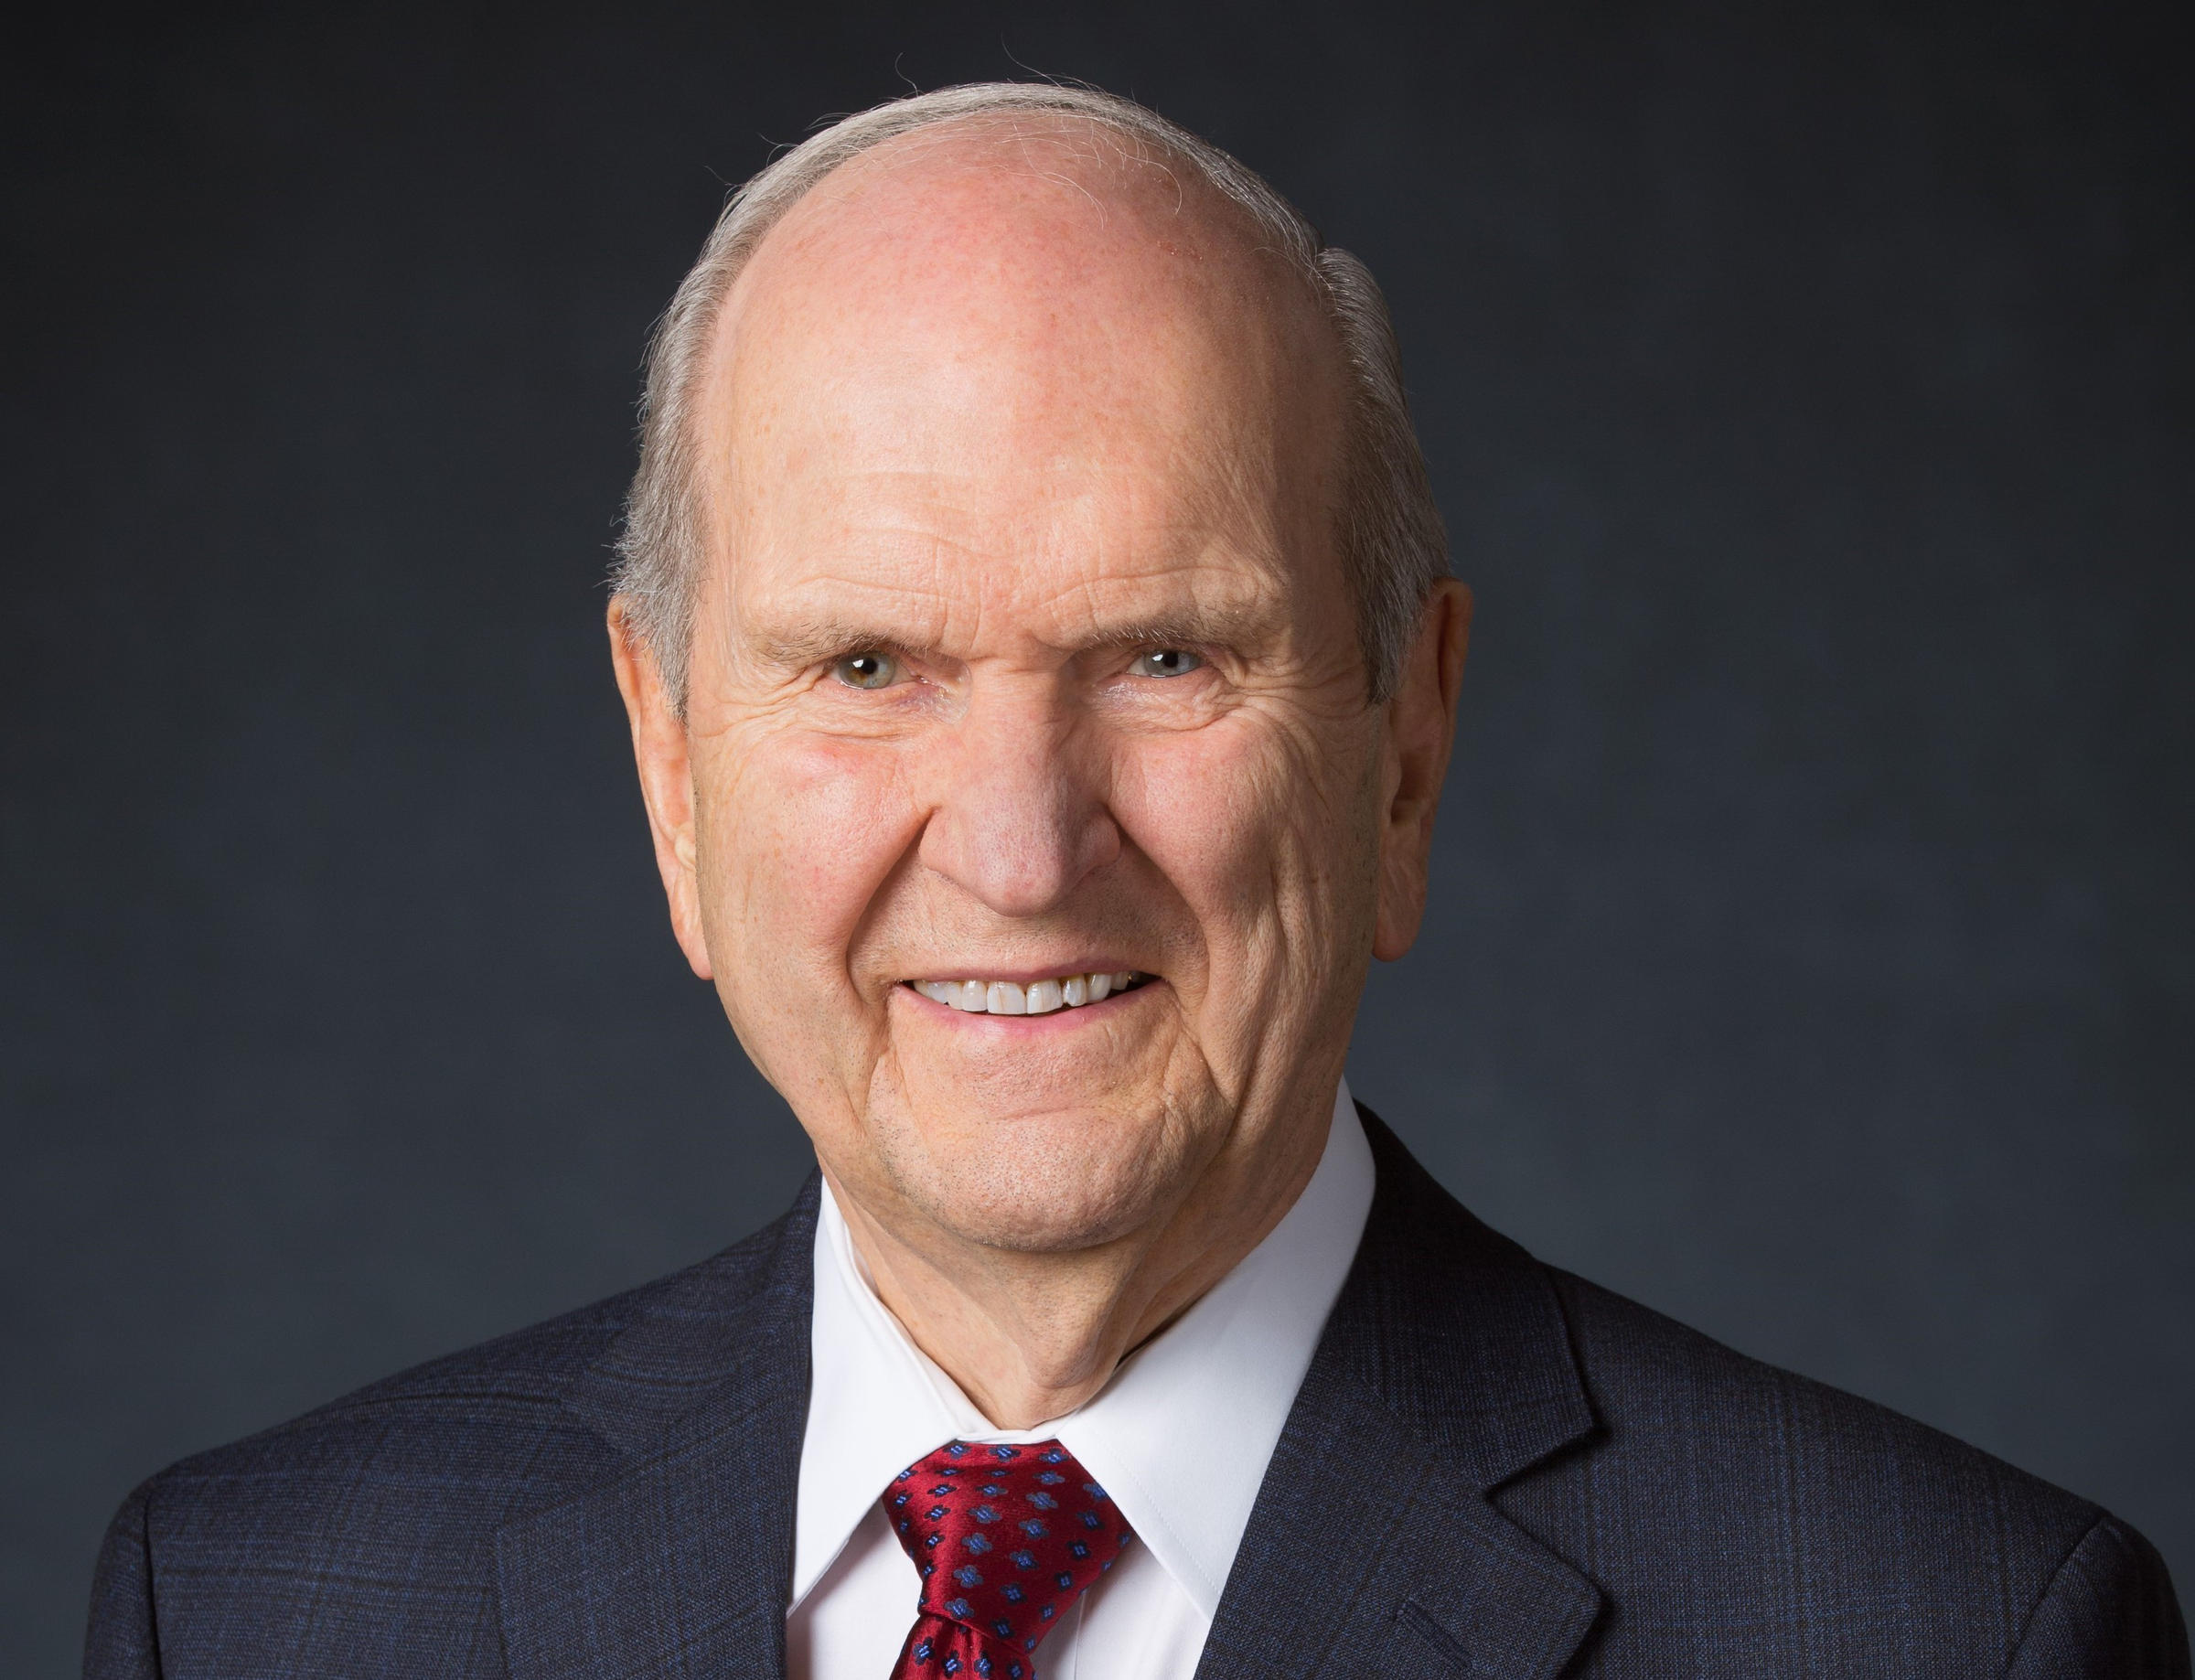 russell m nelson expected to announce new mormon lds clipart church building lds church clip art free